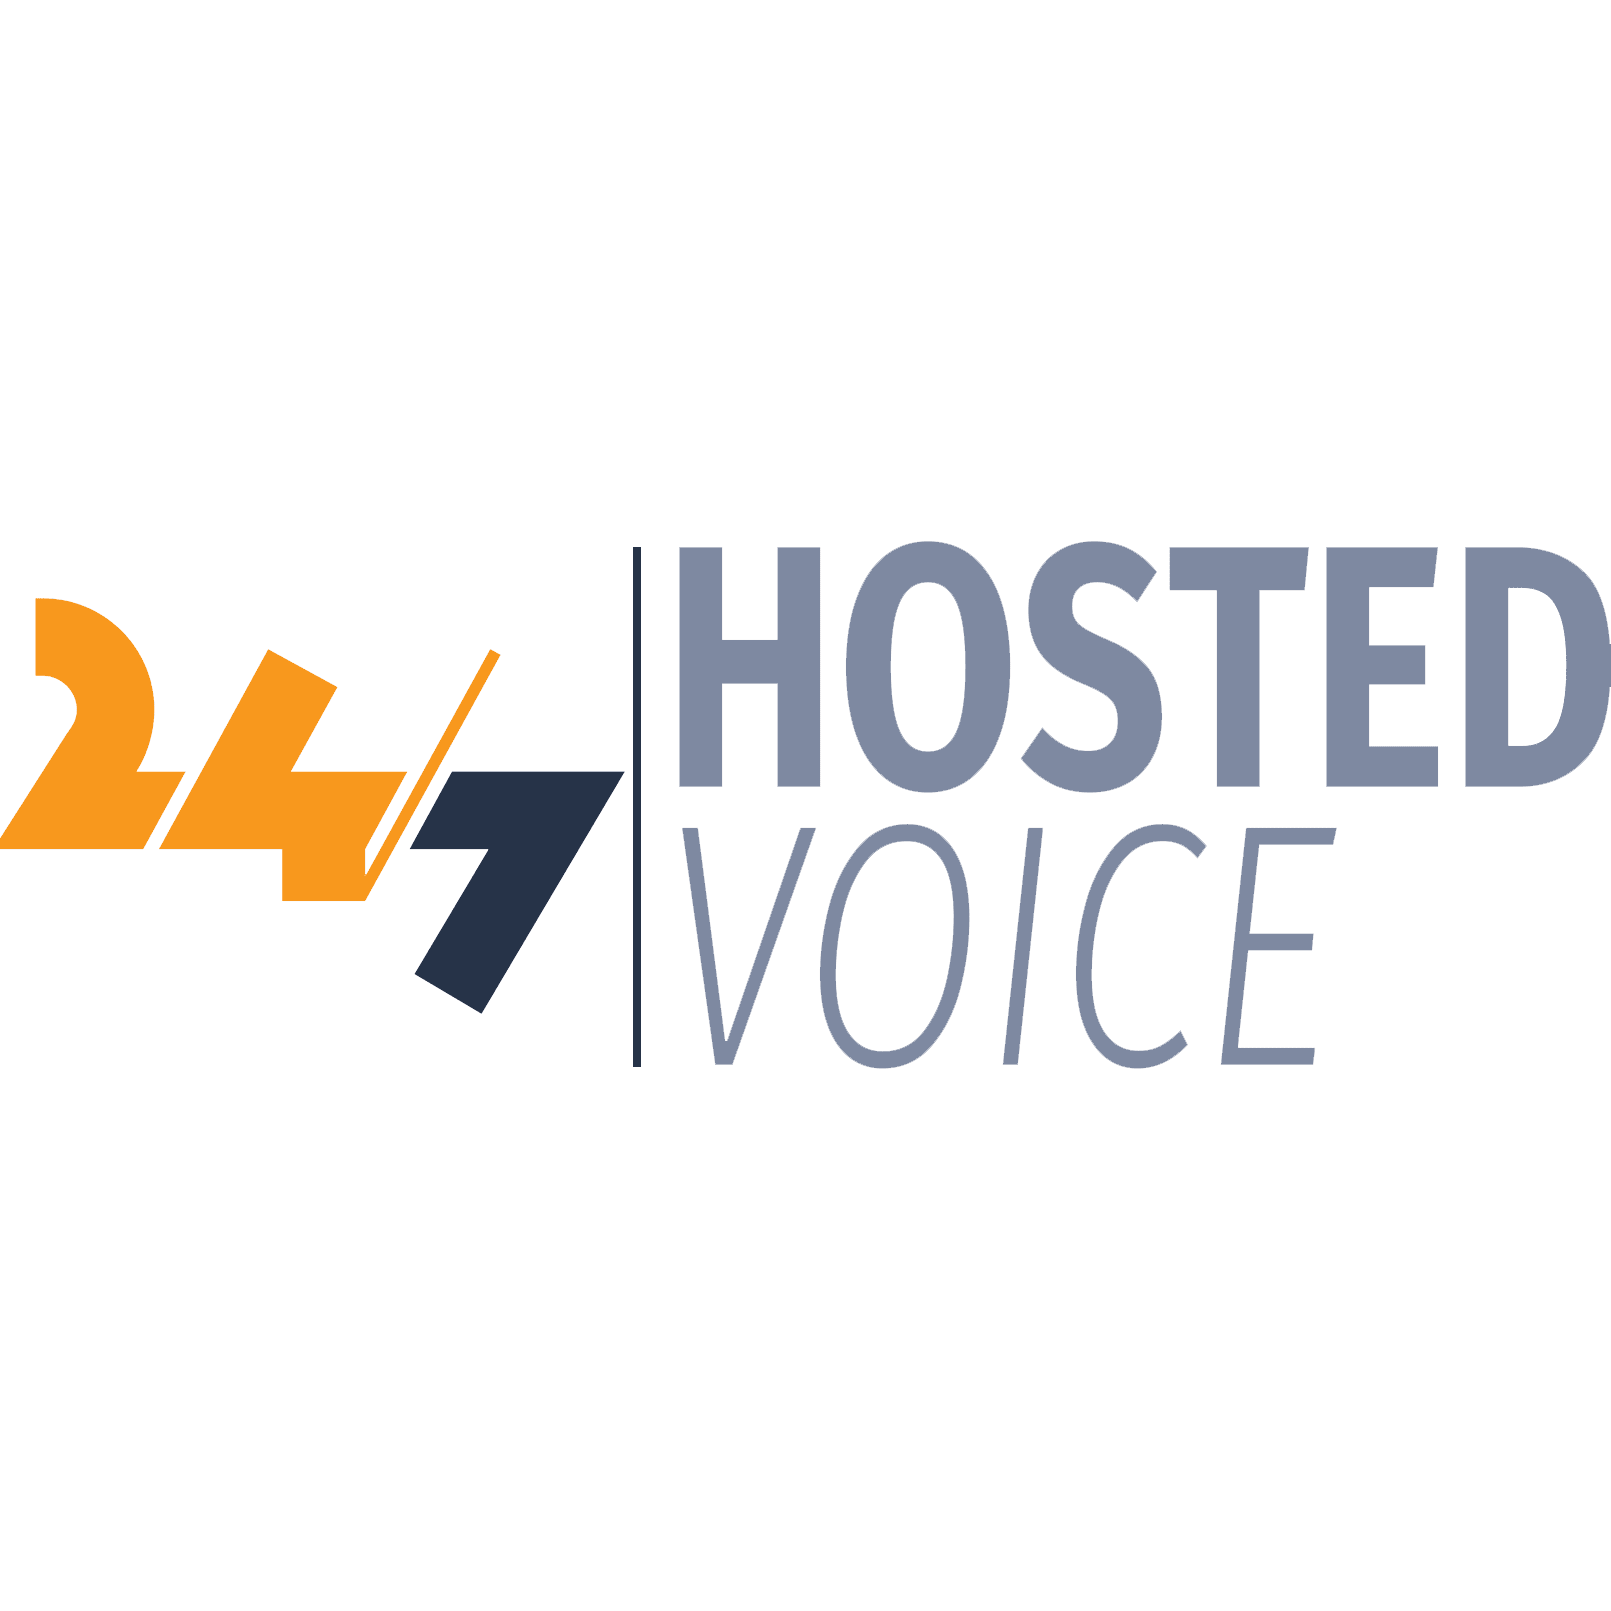 24/7 Hosted Voice - Englewood, CO 80112 - (303)991-2224 | ShowMeLocal.com